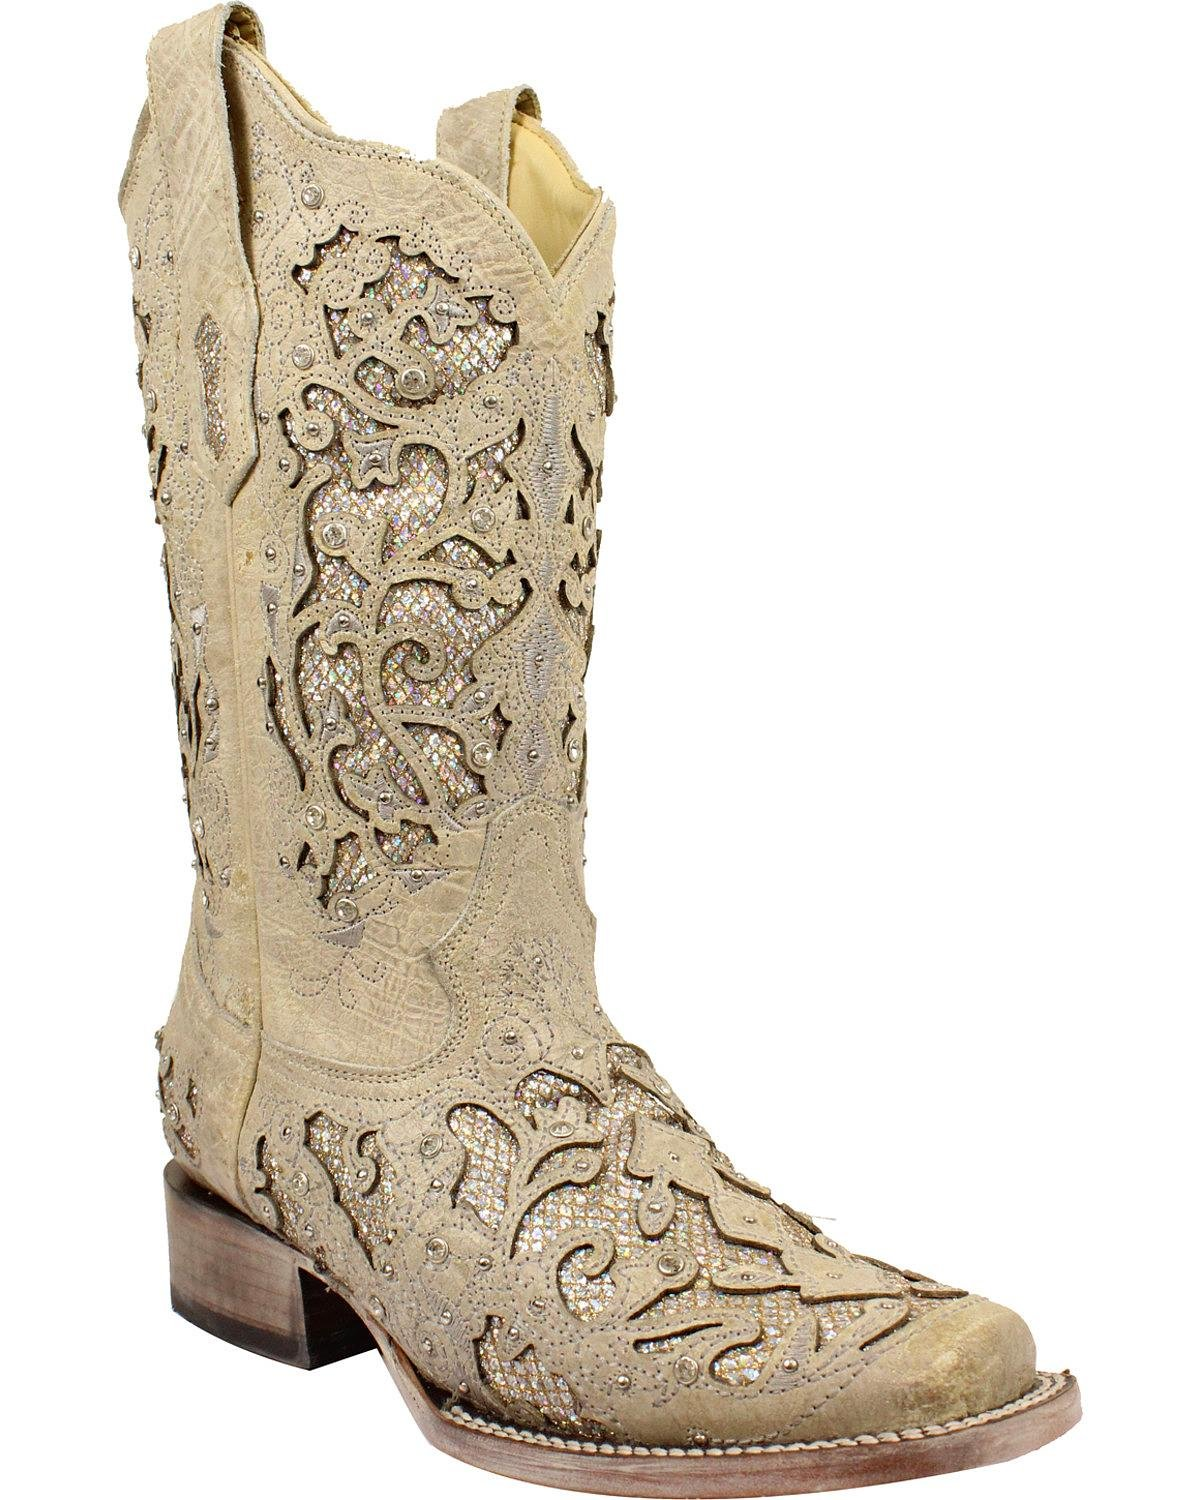 CORRAL Women's White Glitter and Crystals Cowgirl Boot Square Toe - A3397 B077GVB7KV 9.5 B(M) US White